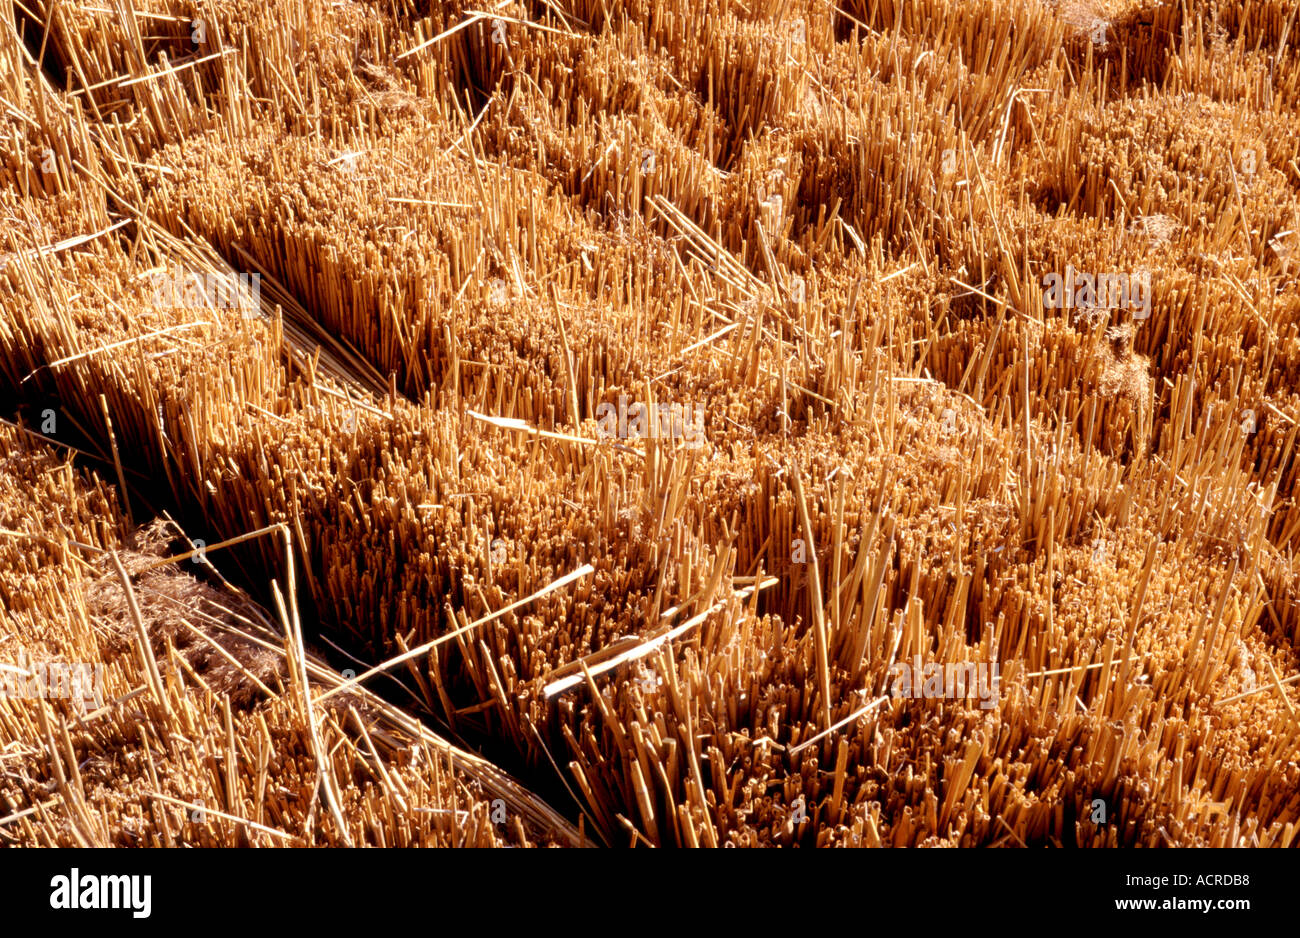 DRY REEDS FOR THATCHING ENGLAND UK - Stock Image